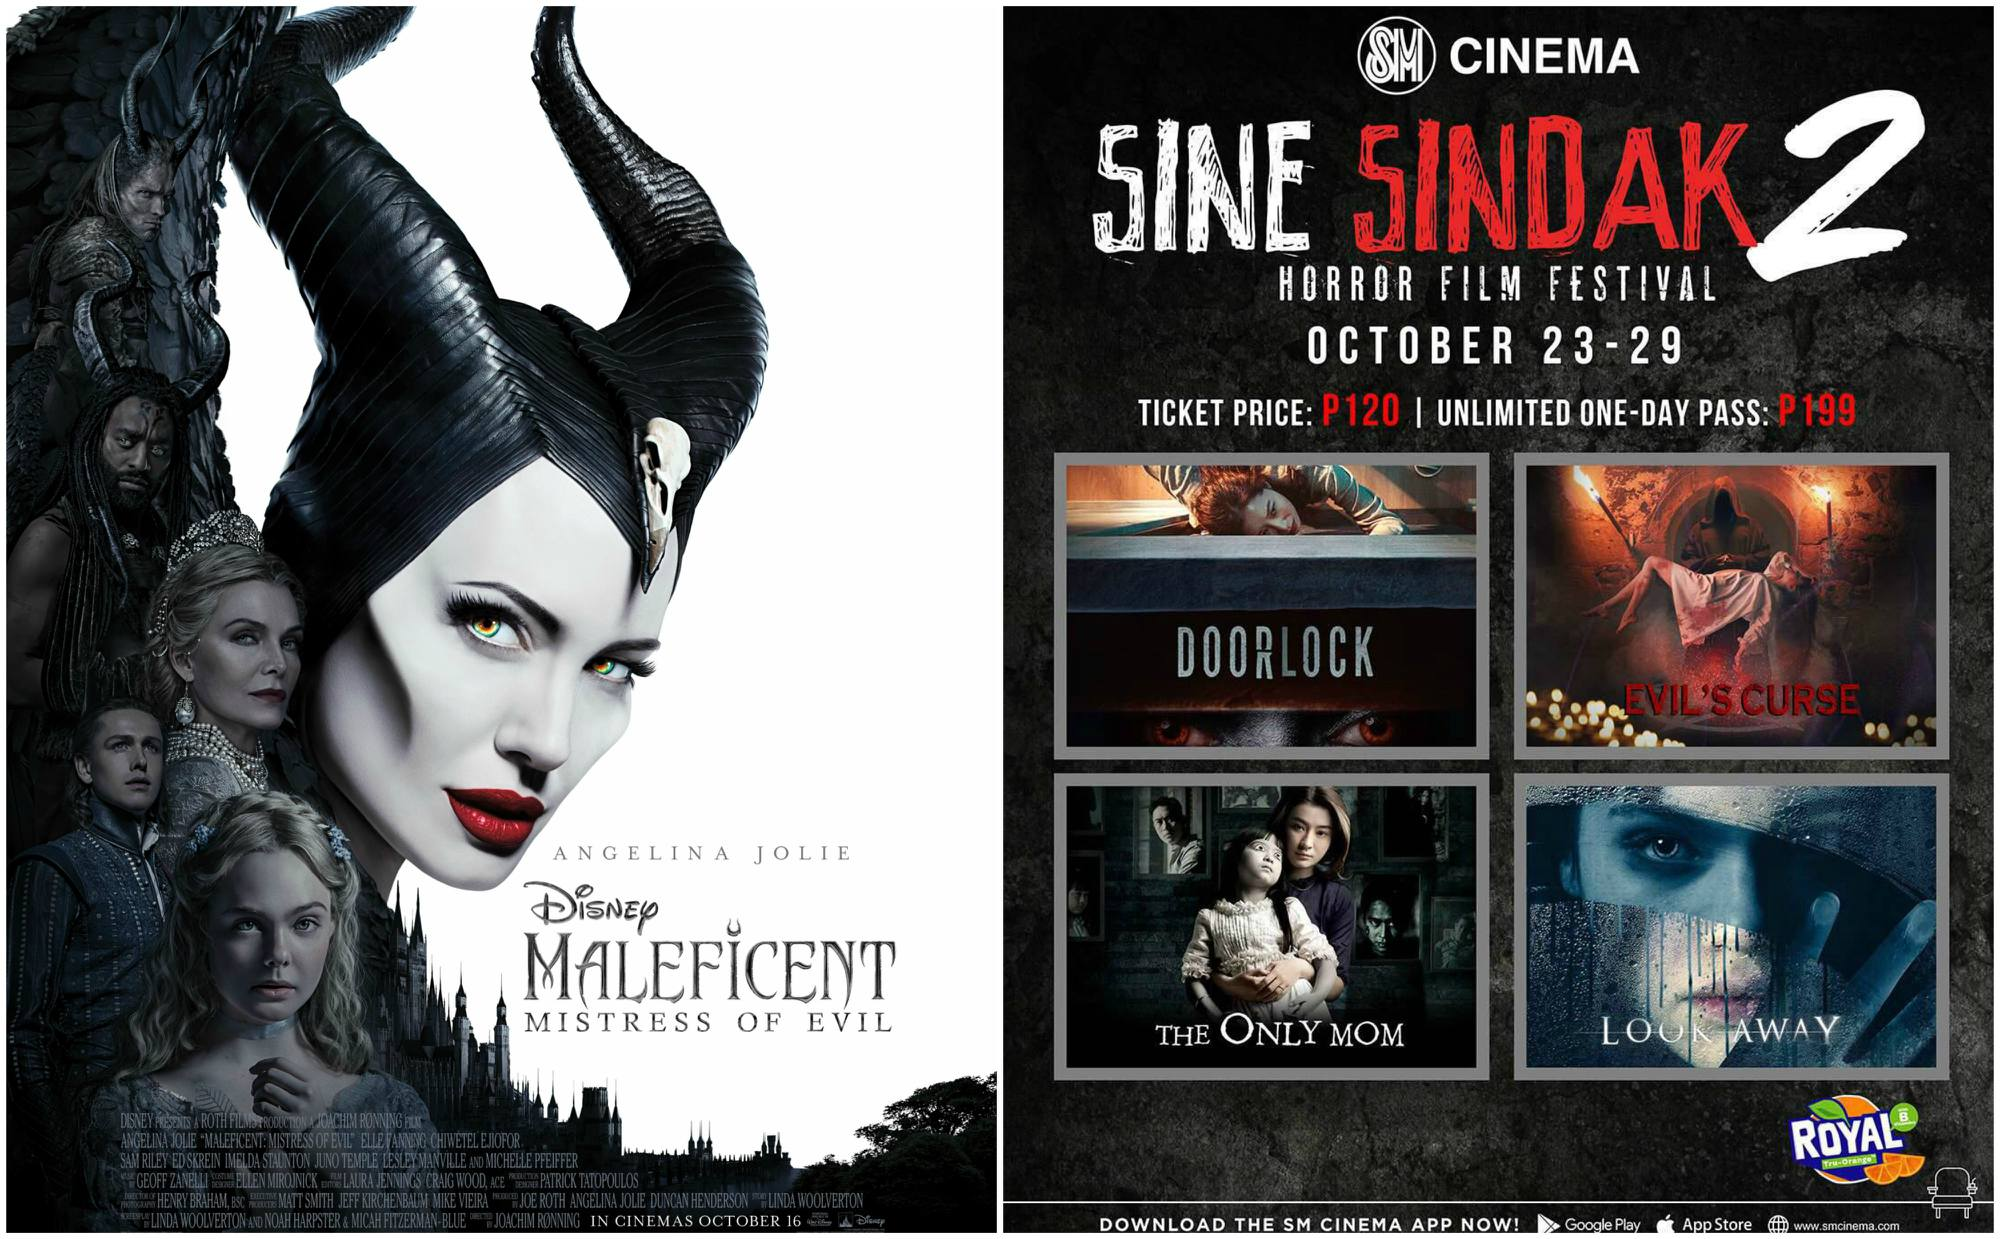 5 Things To Watch Out For At Sm Cinema This Halloween